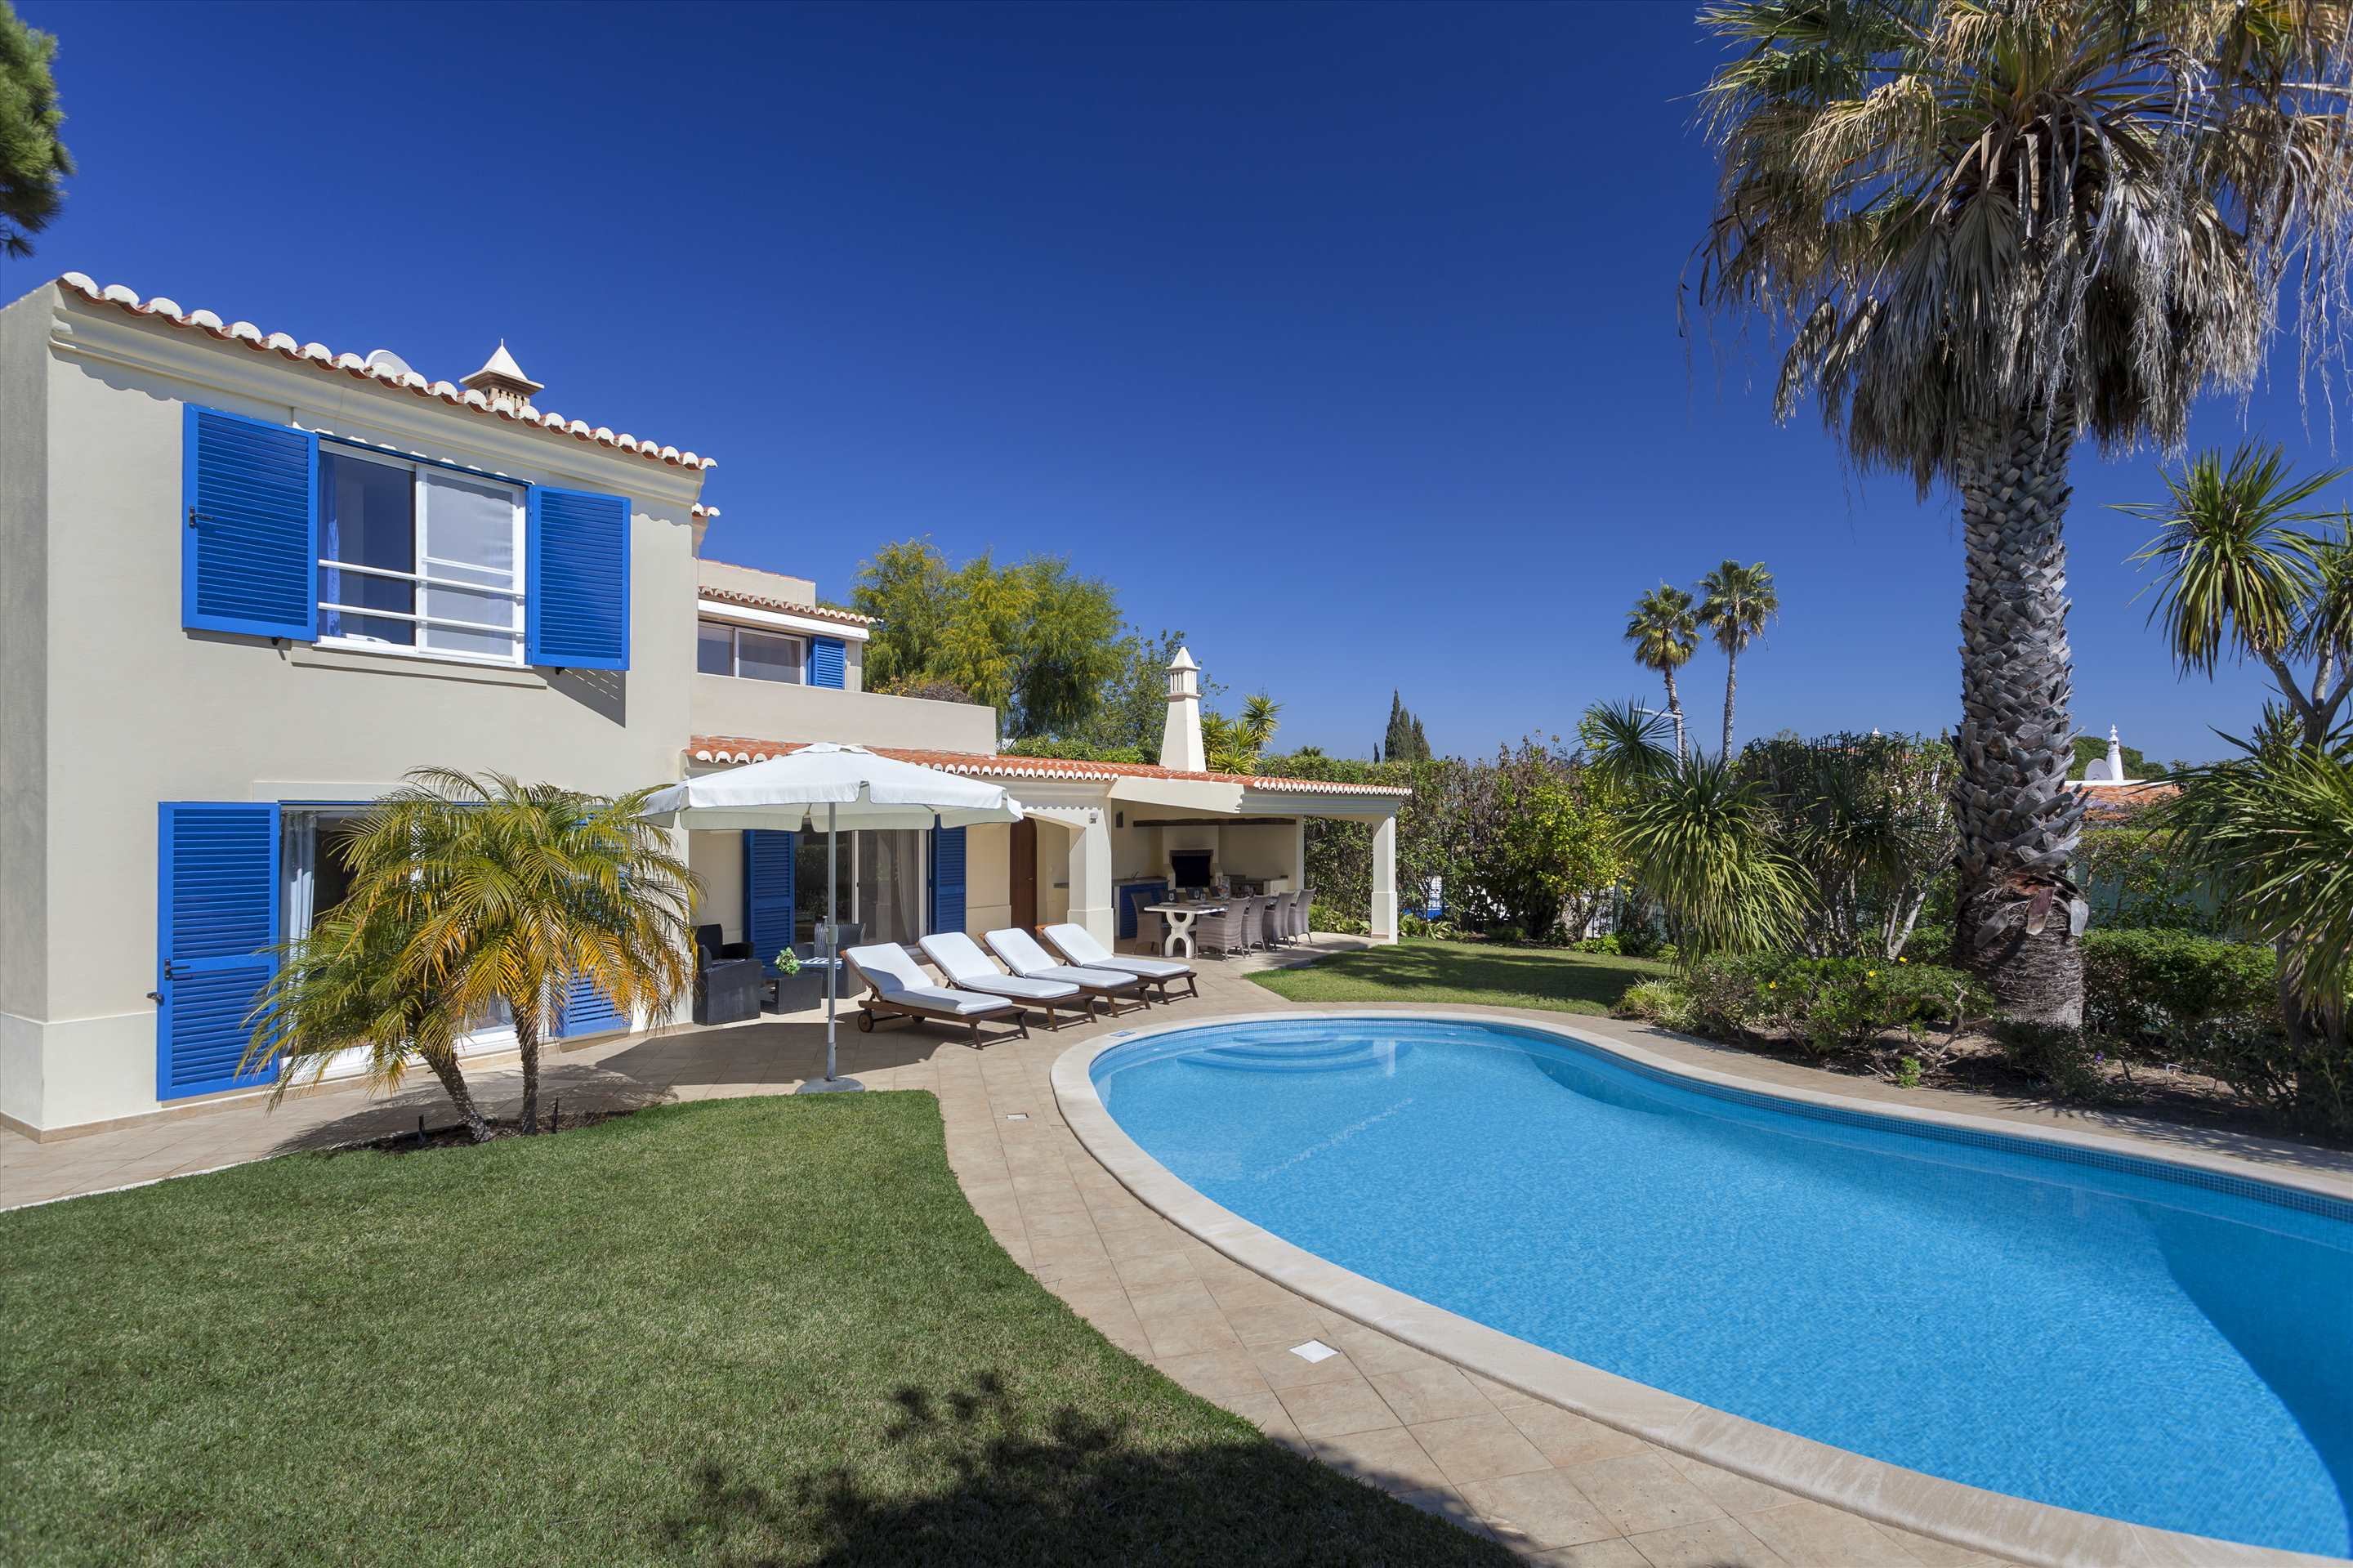 Villa Longa, 4 bedroom villa in Vale do Lobo, Algarve Photo #7